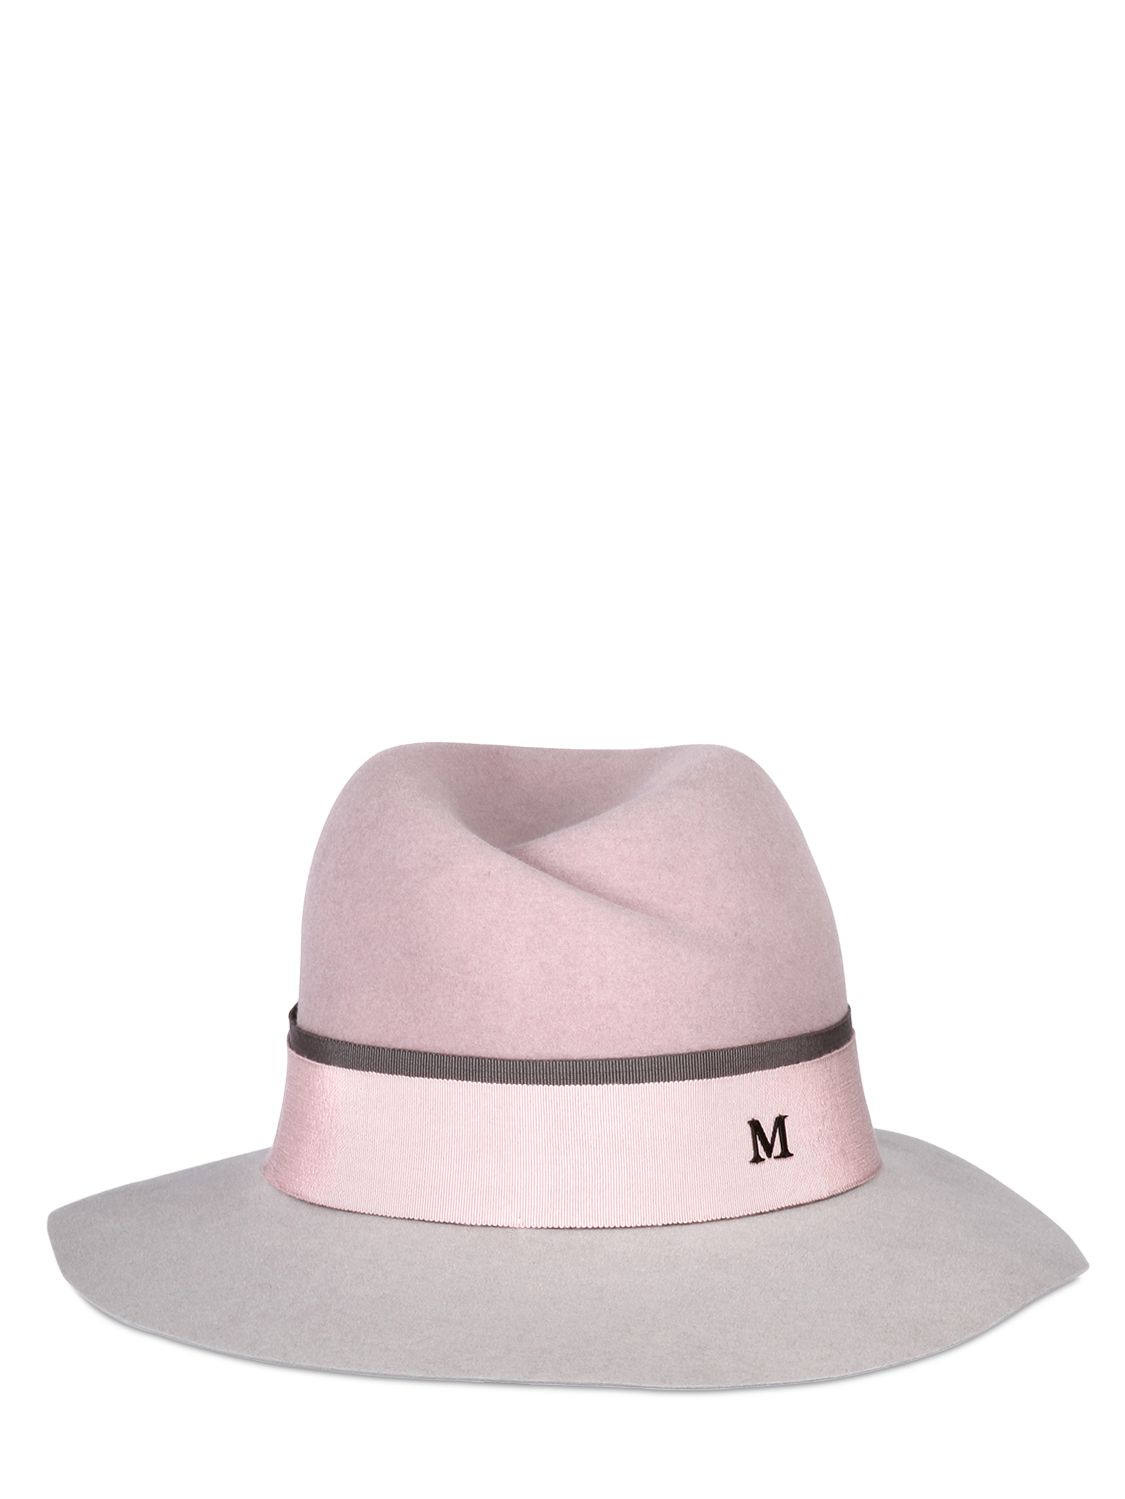 Two-tone Virginie Hat Maison Michel qe5CTY1UPJ